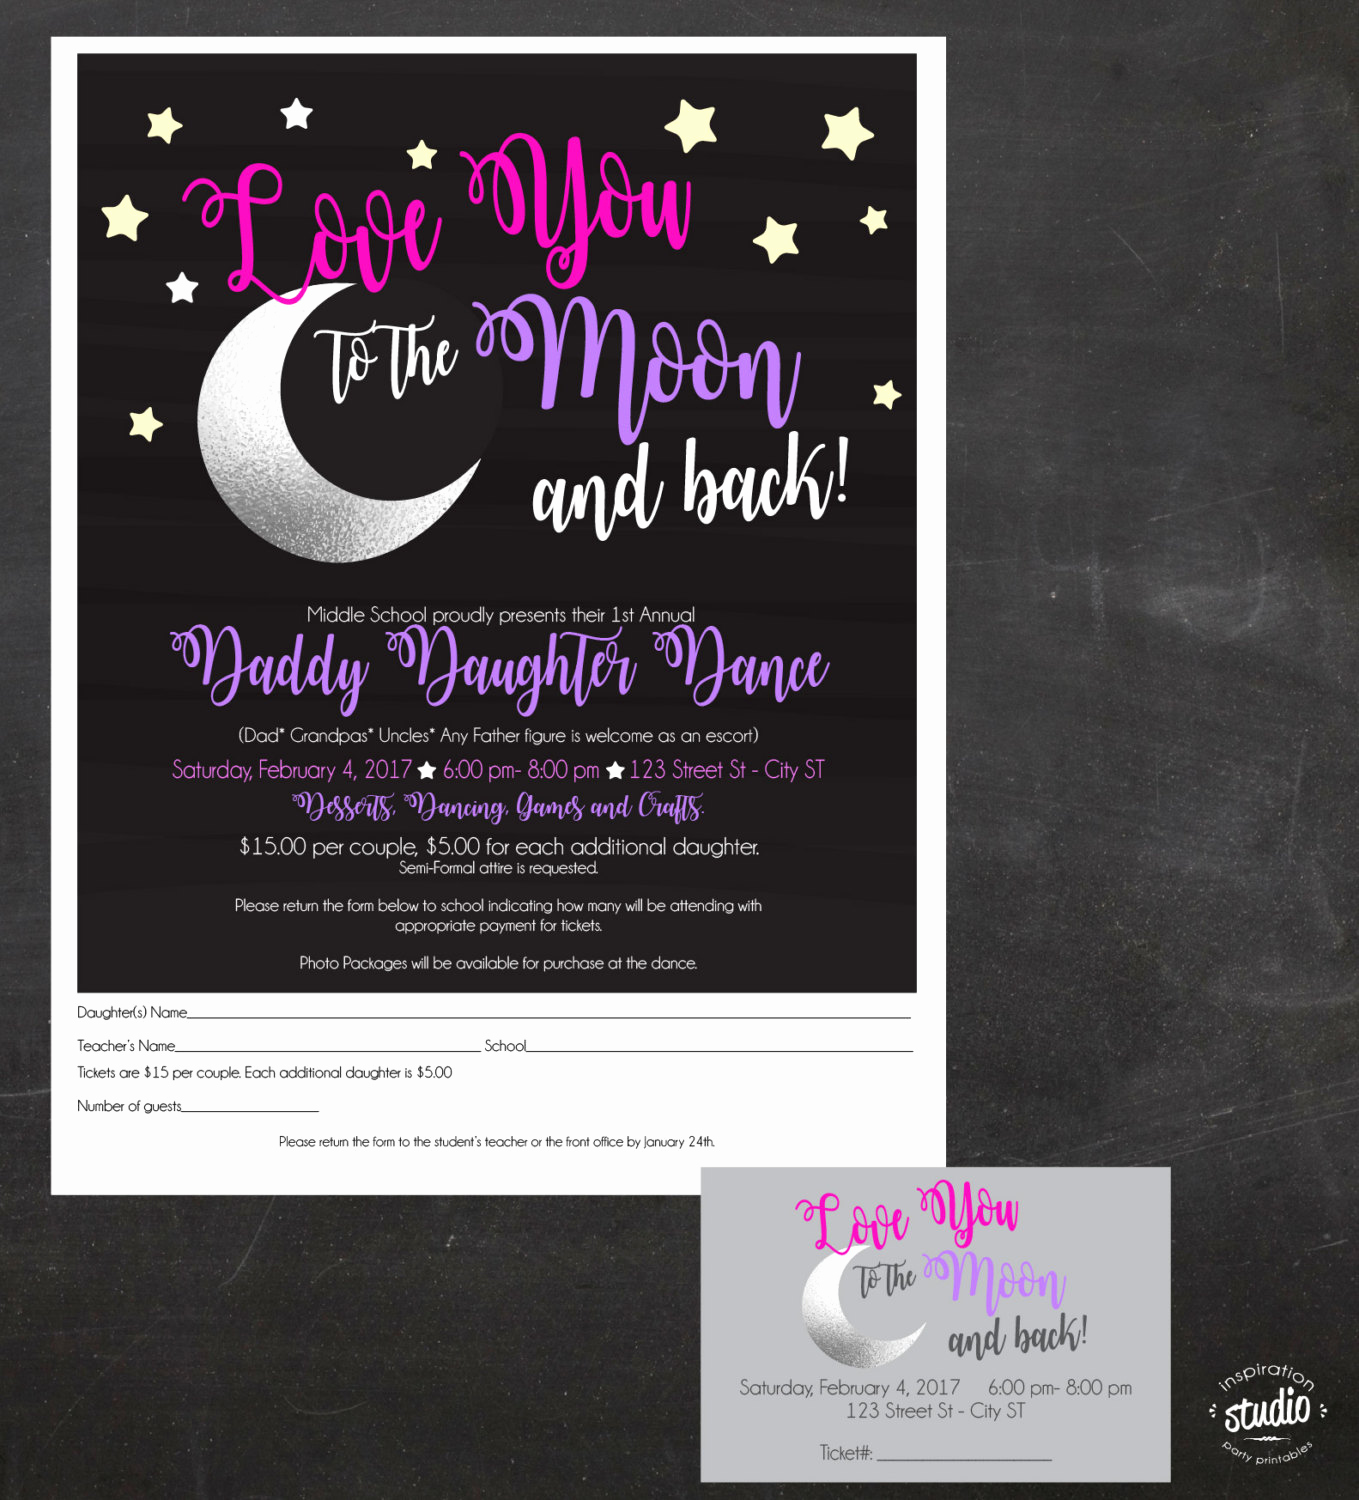 Father Daughter Dance Invitation Template Unique Daddy Daughter Dance Love You to the Moon and Back event